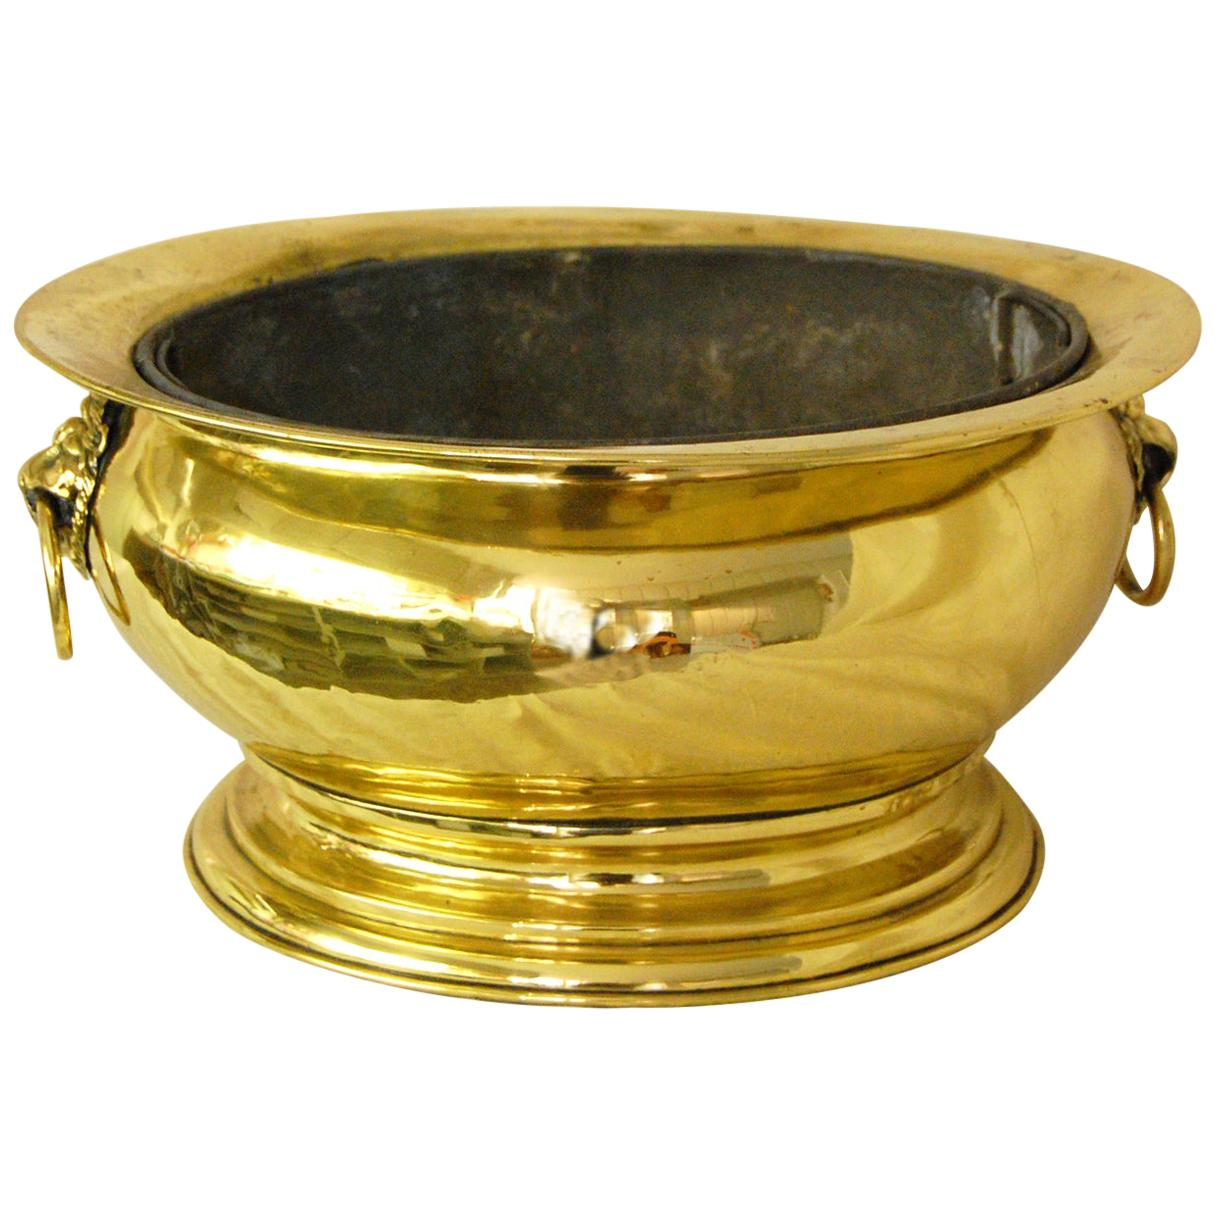 Dutch 19th Century Brass Large Oval Wine Cooler with Original Removable Liner